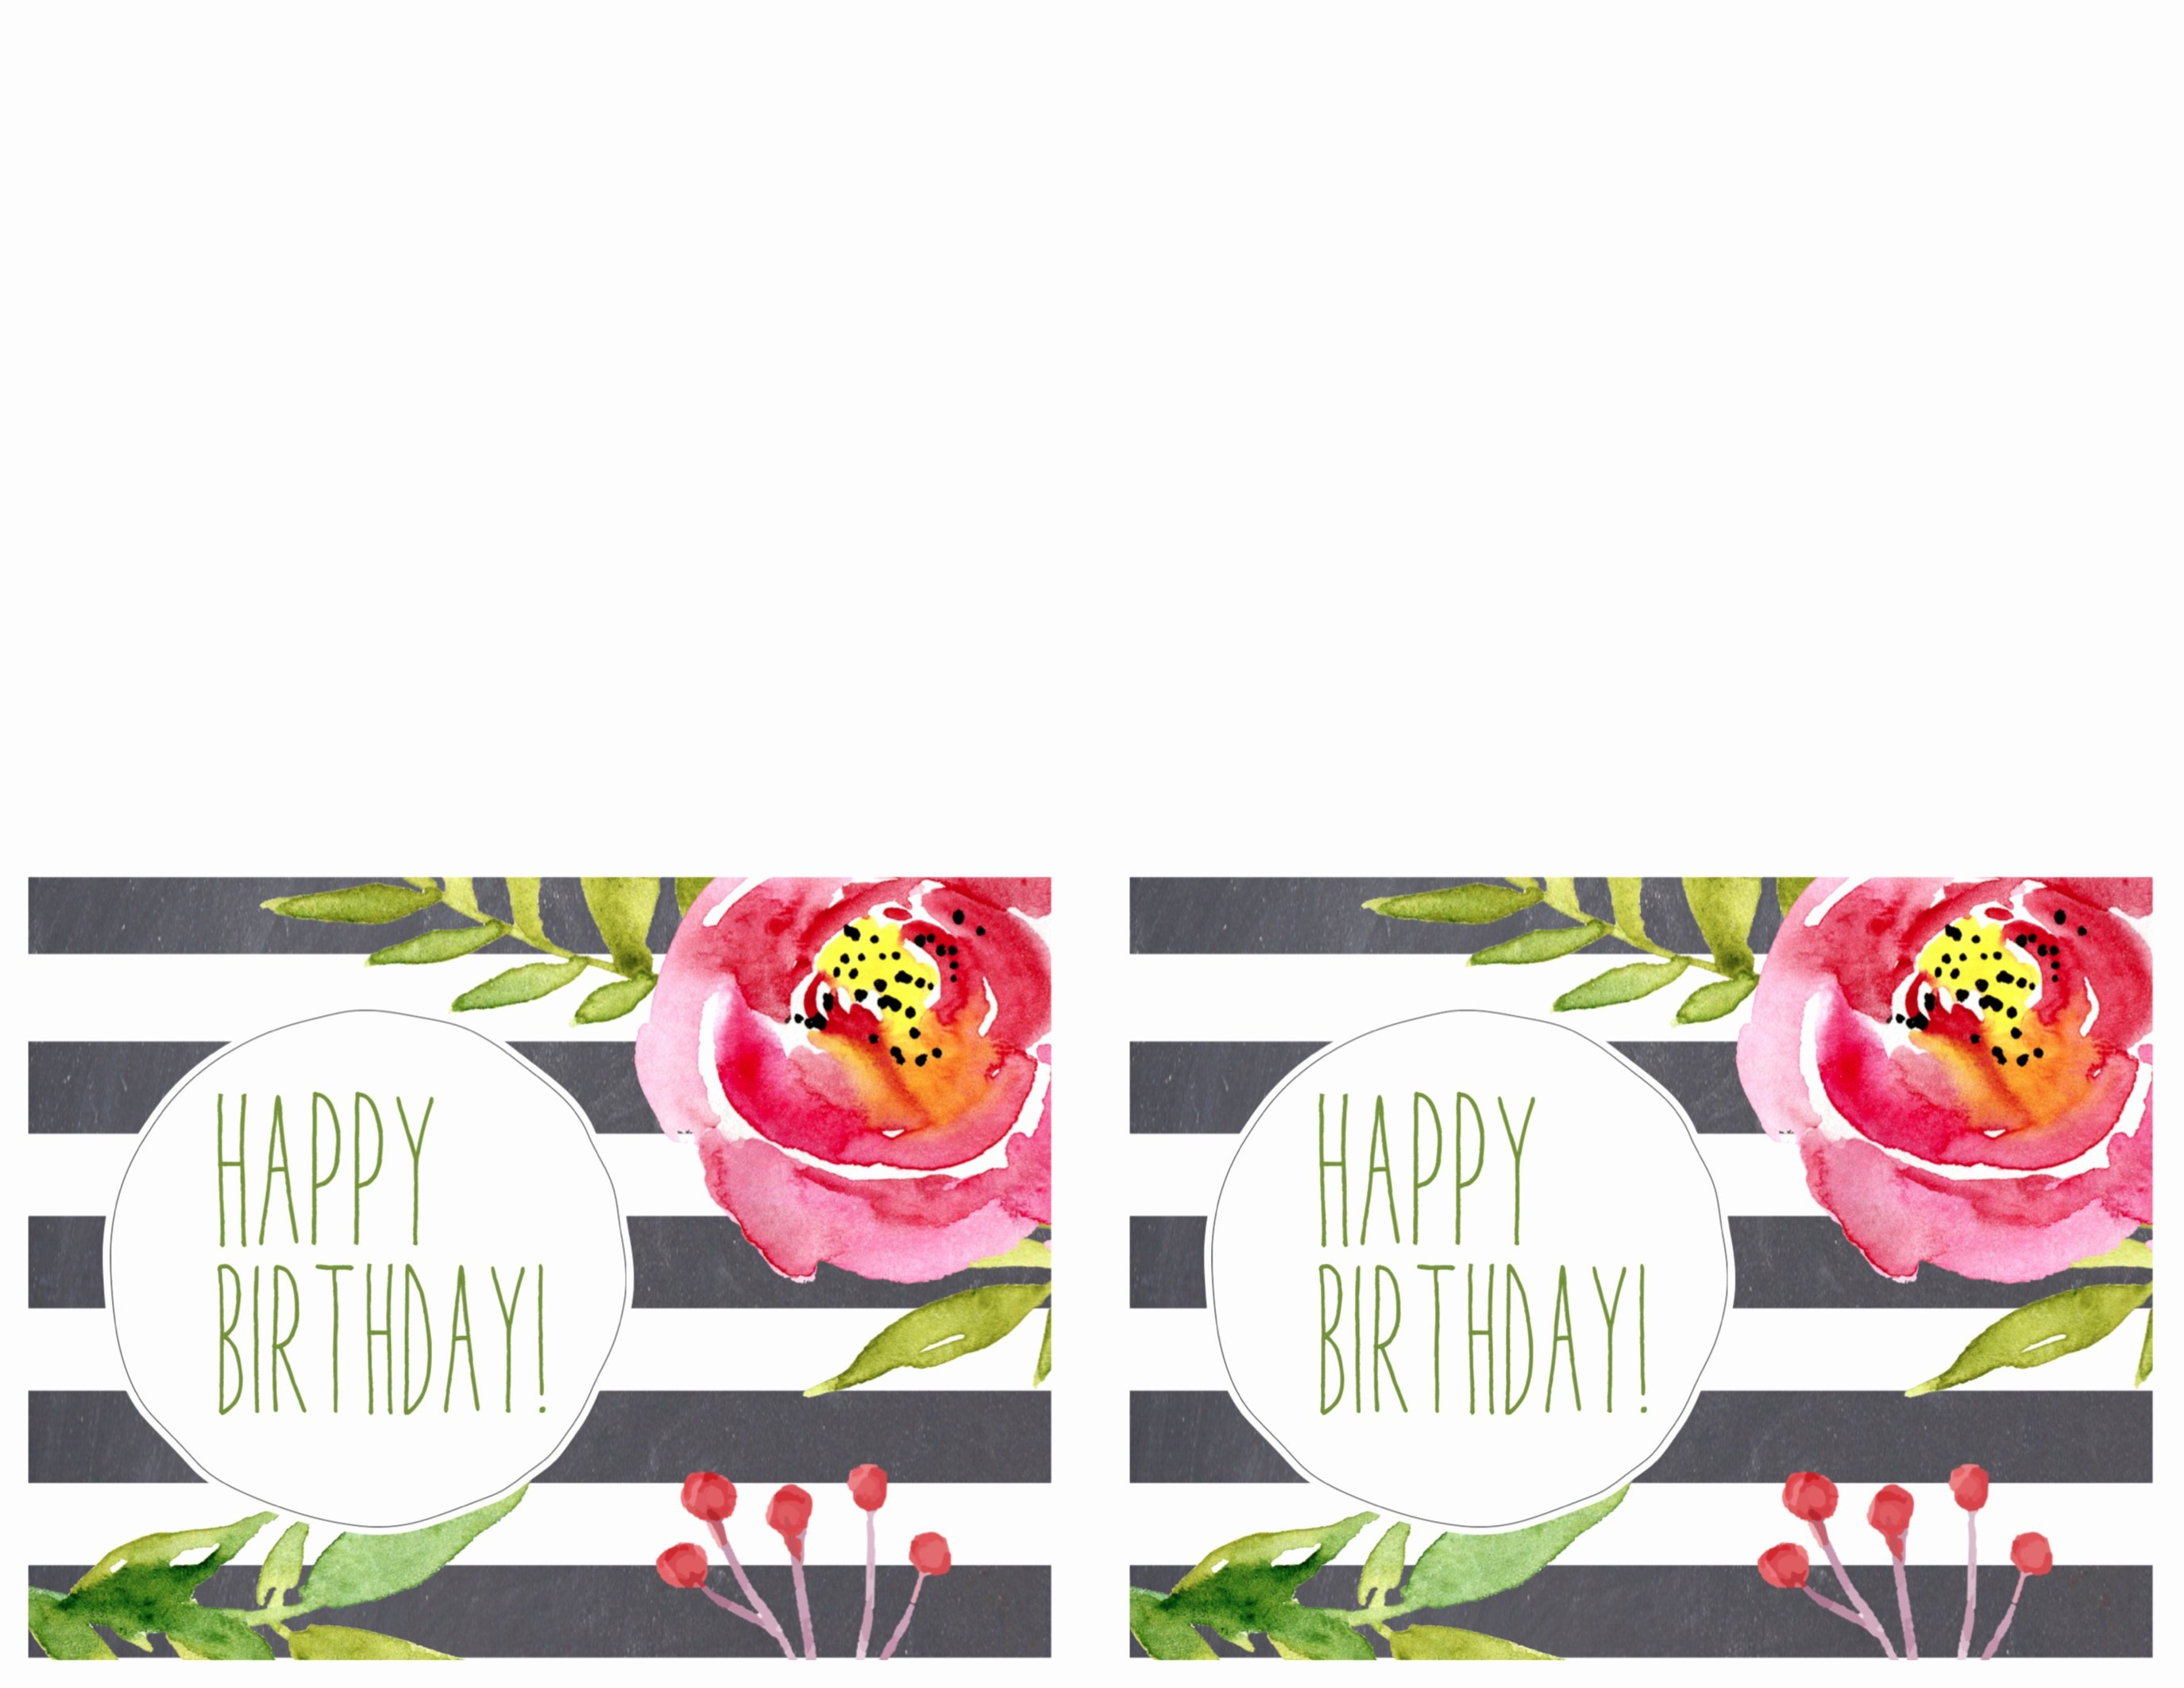 First Birthday Invitations: Juni 1983 - Free Printable Birthday Cards For Her